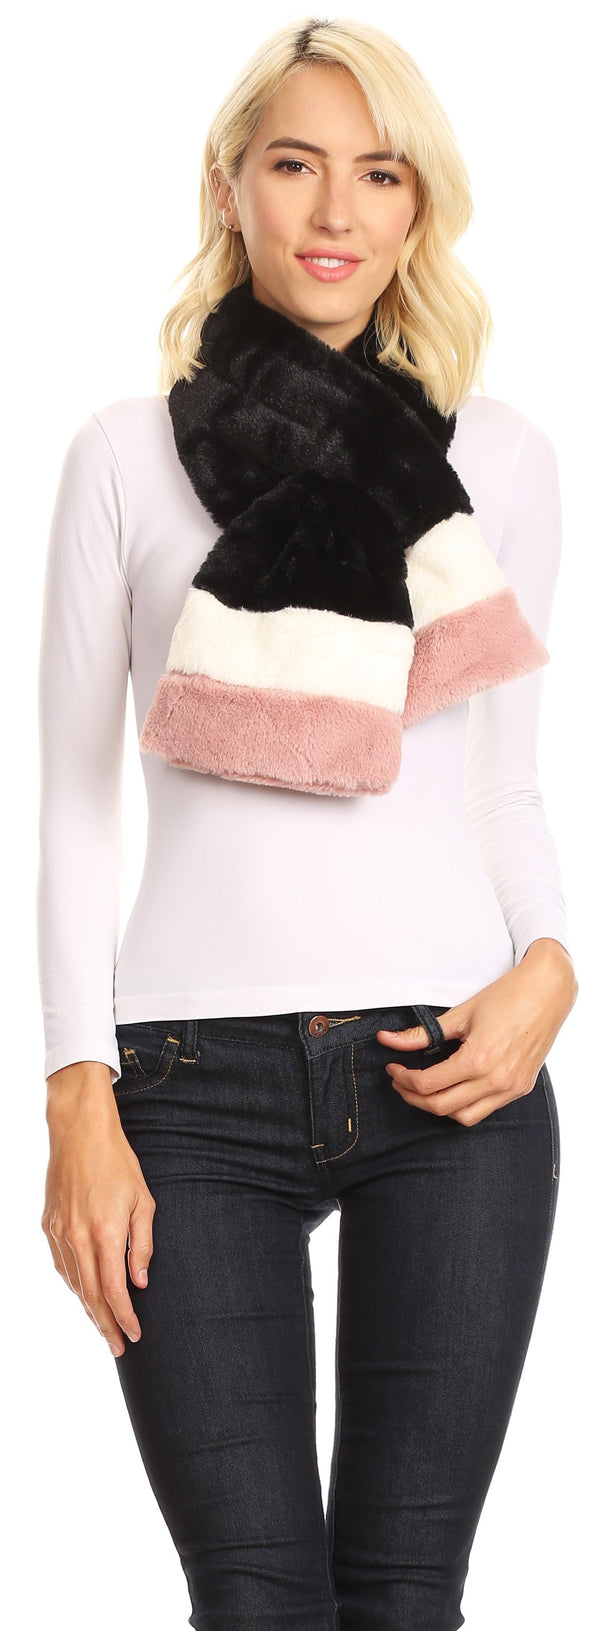 Sakkas Colette Faux Mink Warm Winter Soft Luxurious KeyHole Scarf#color_1784-black